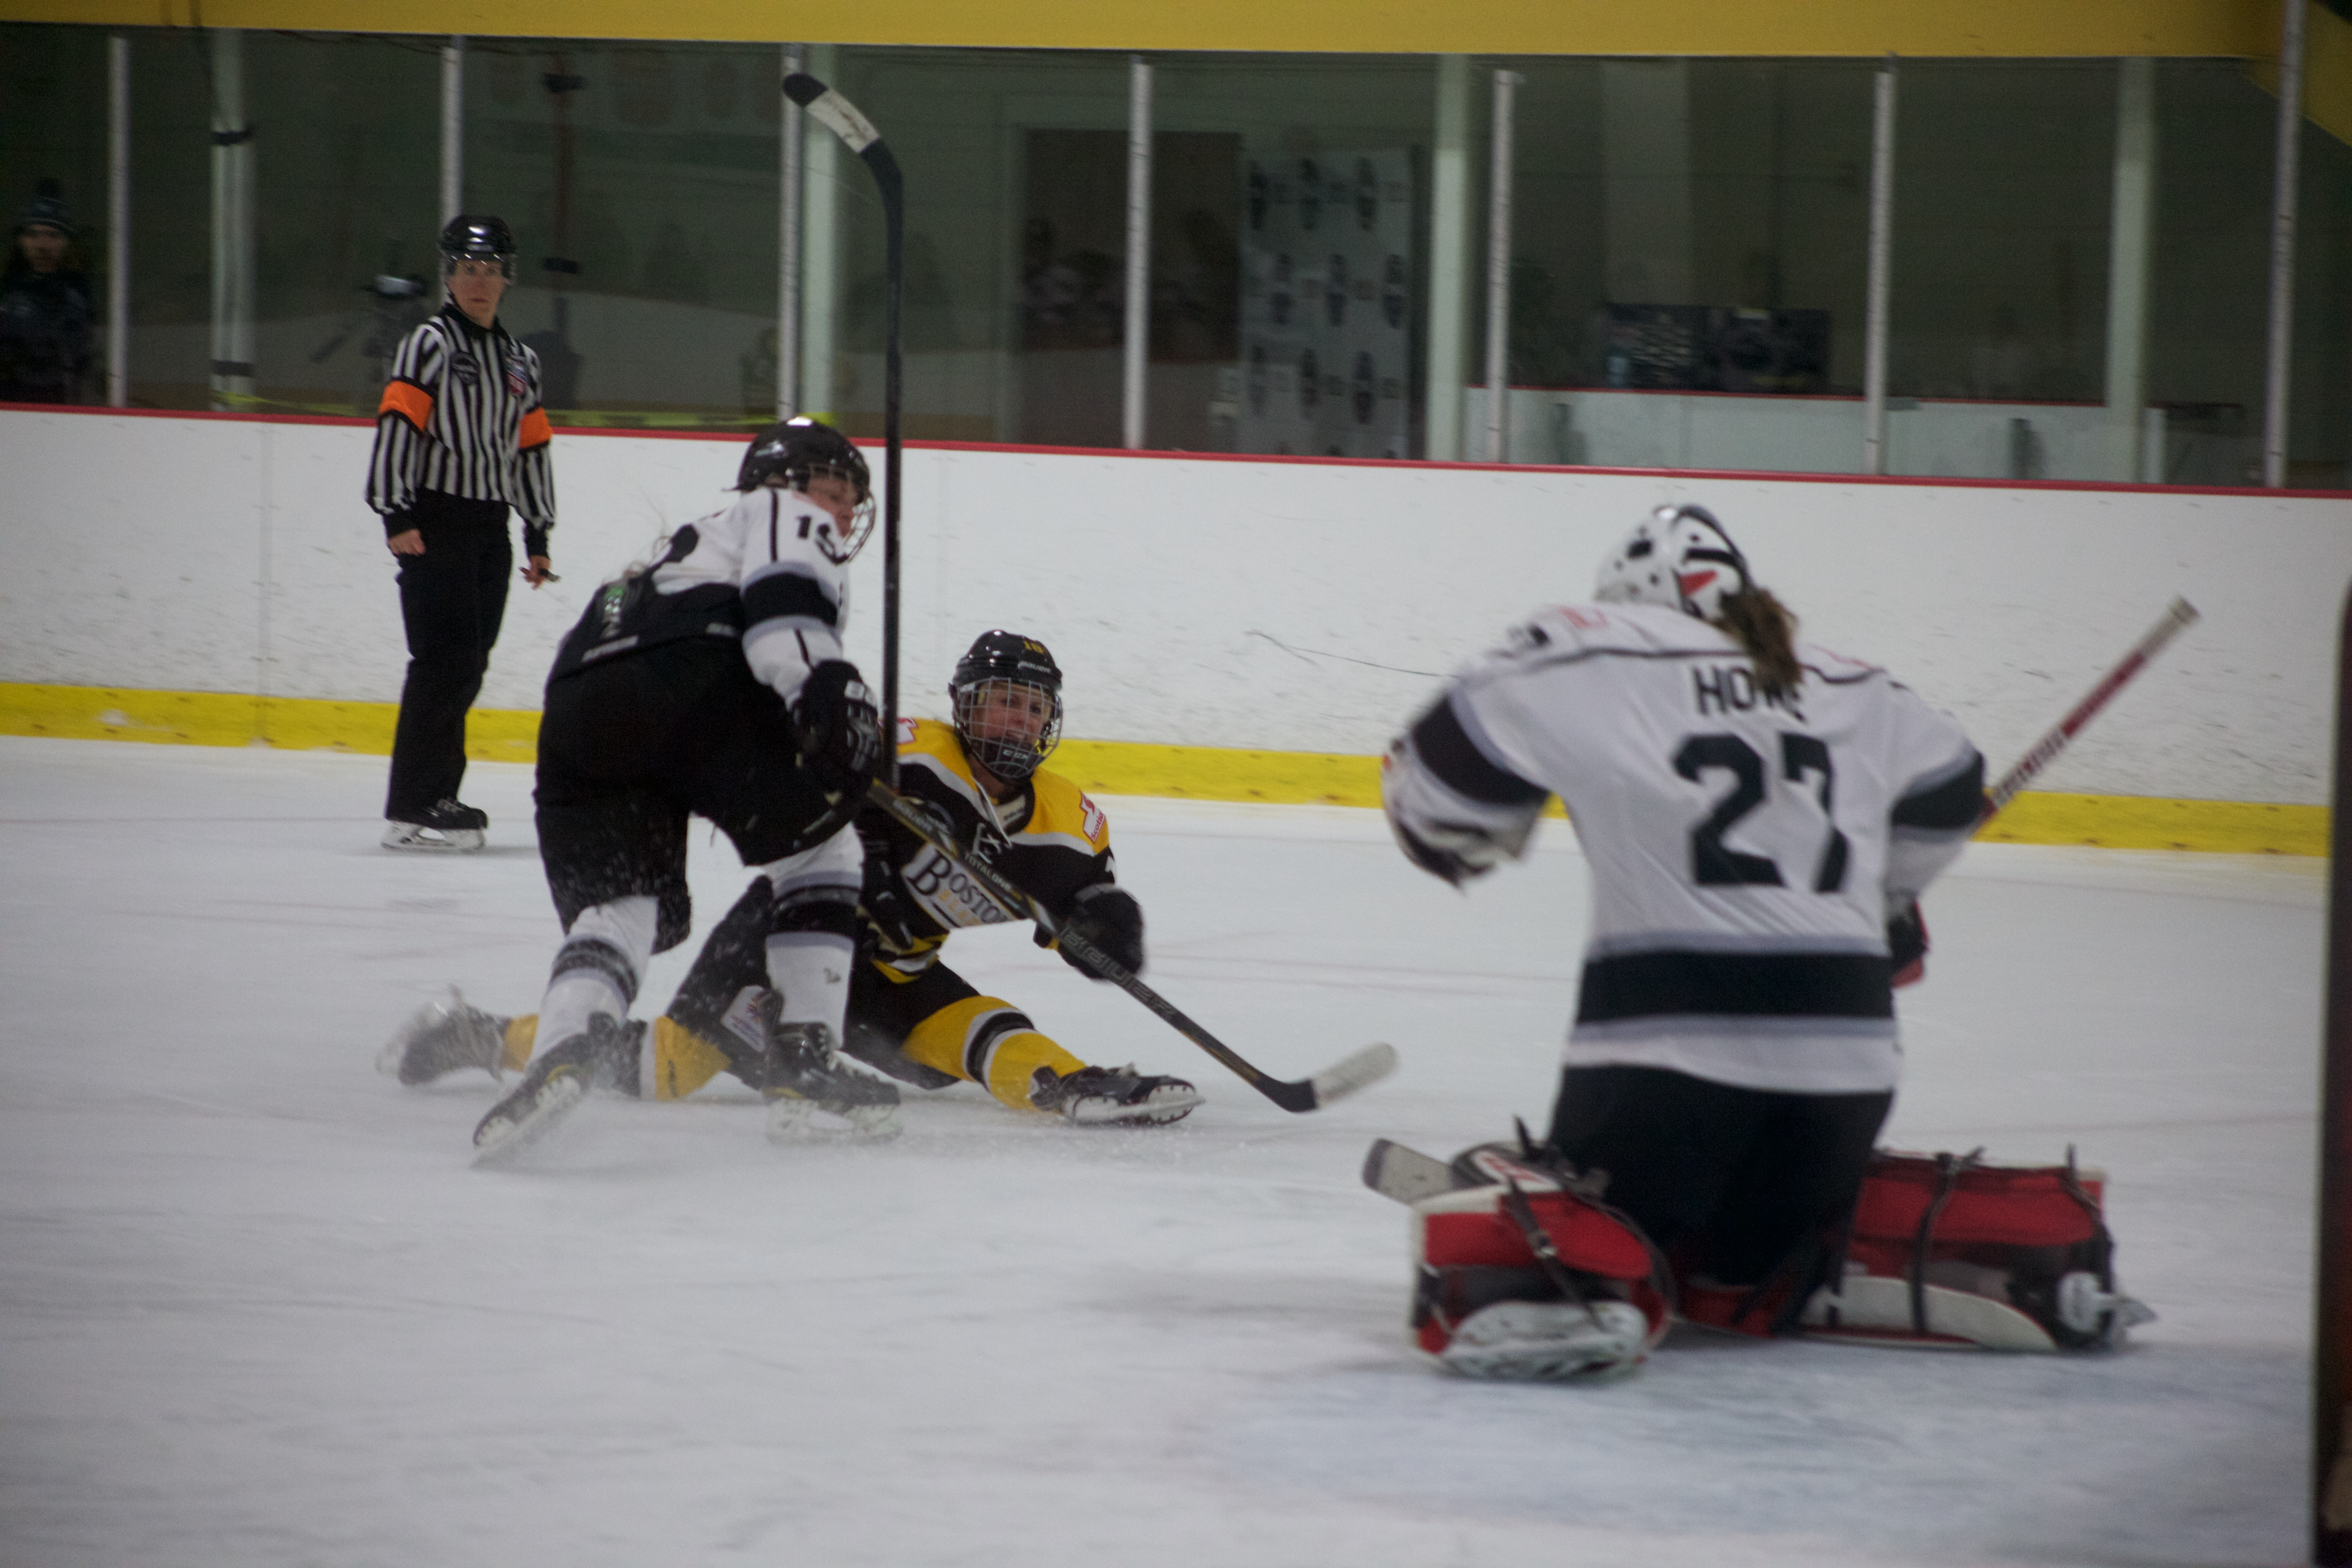 Blades defensemen Maggie DiMasi makes a great shot to score her first goal of the season.